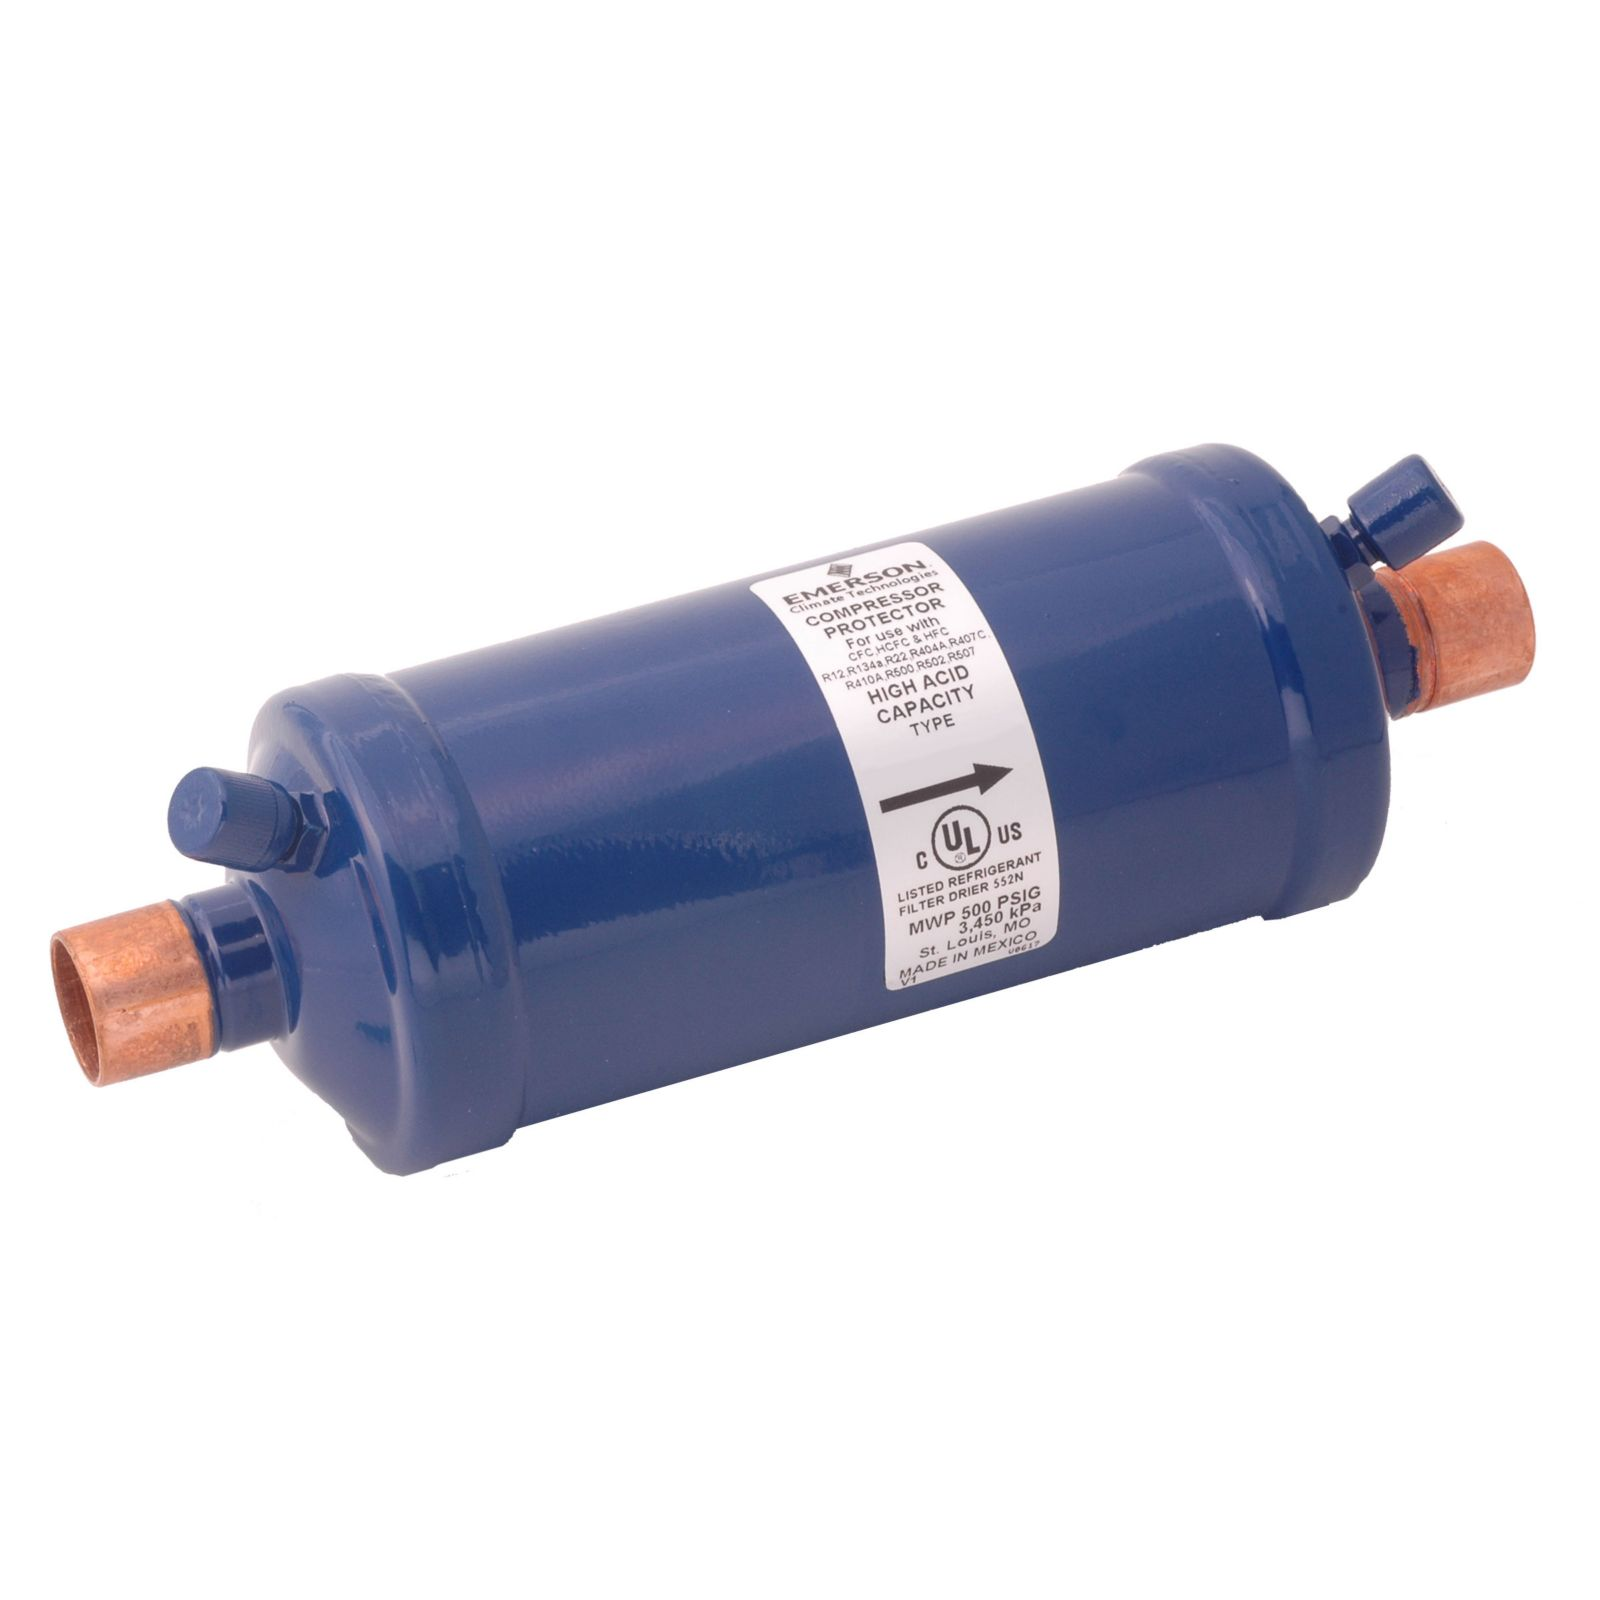 "Emerson 056508 - ASK165Swhh Dual Access Suction Line Filter Drier, 16 Cubic Inch, 5/8"" ODF Connection"